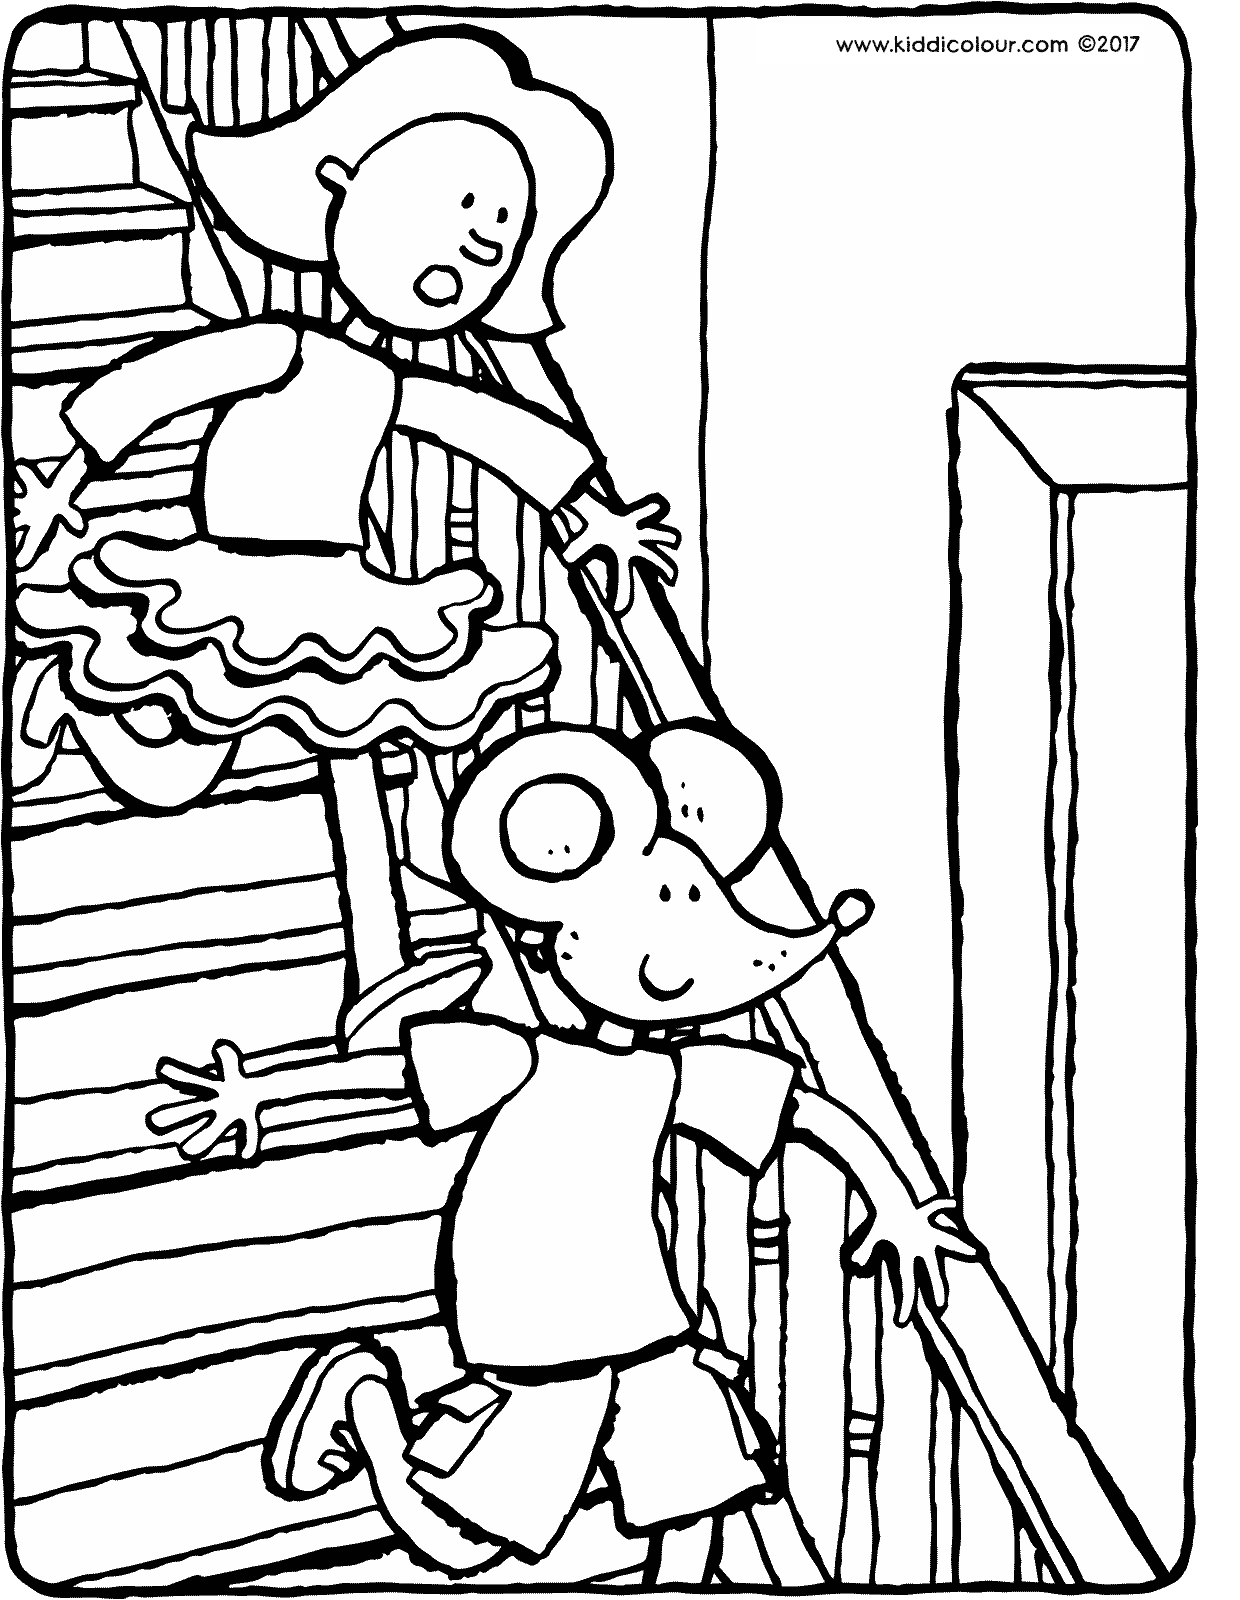 Emma and Thomas walking downstairs coloring page drawing picture 01V